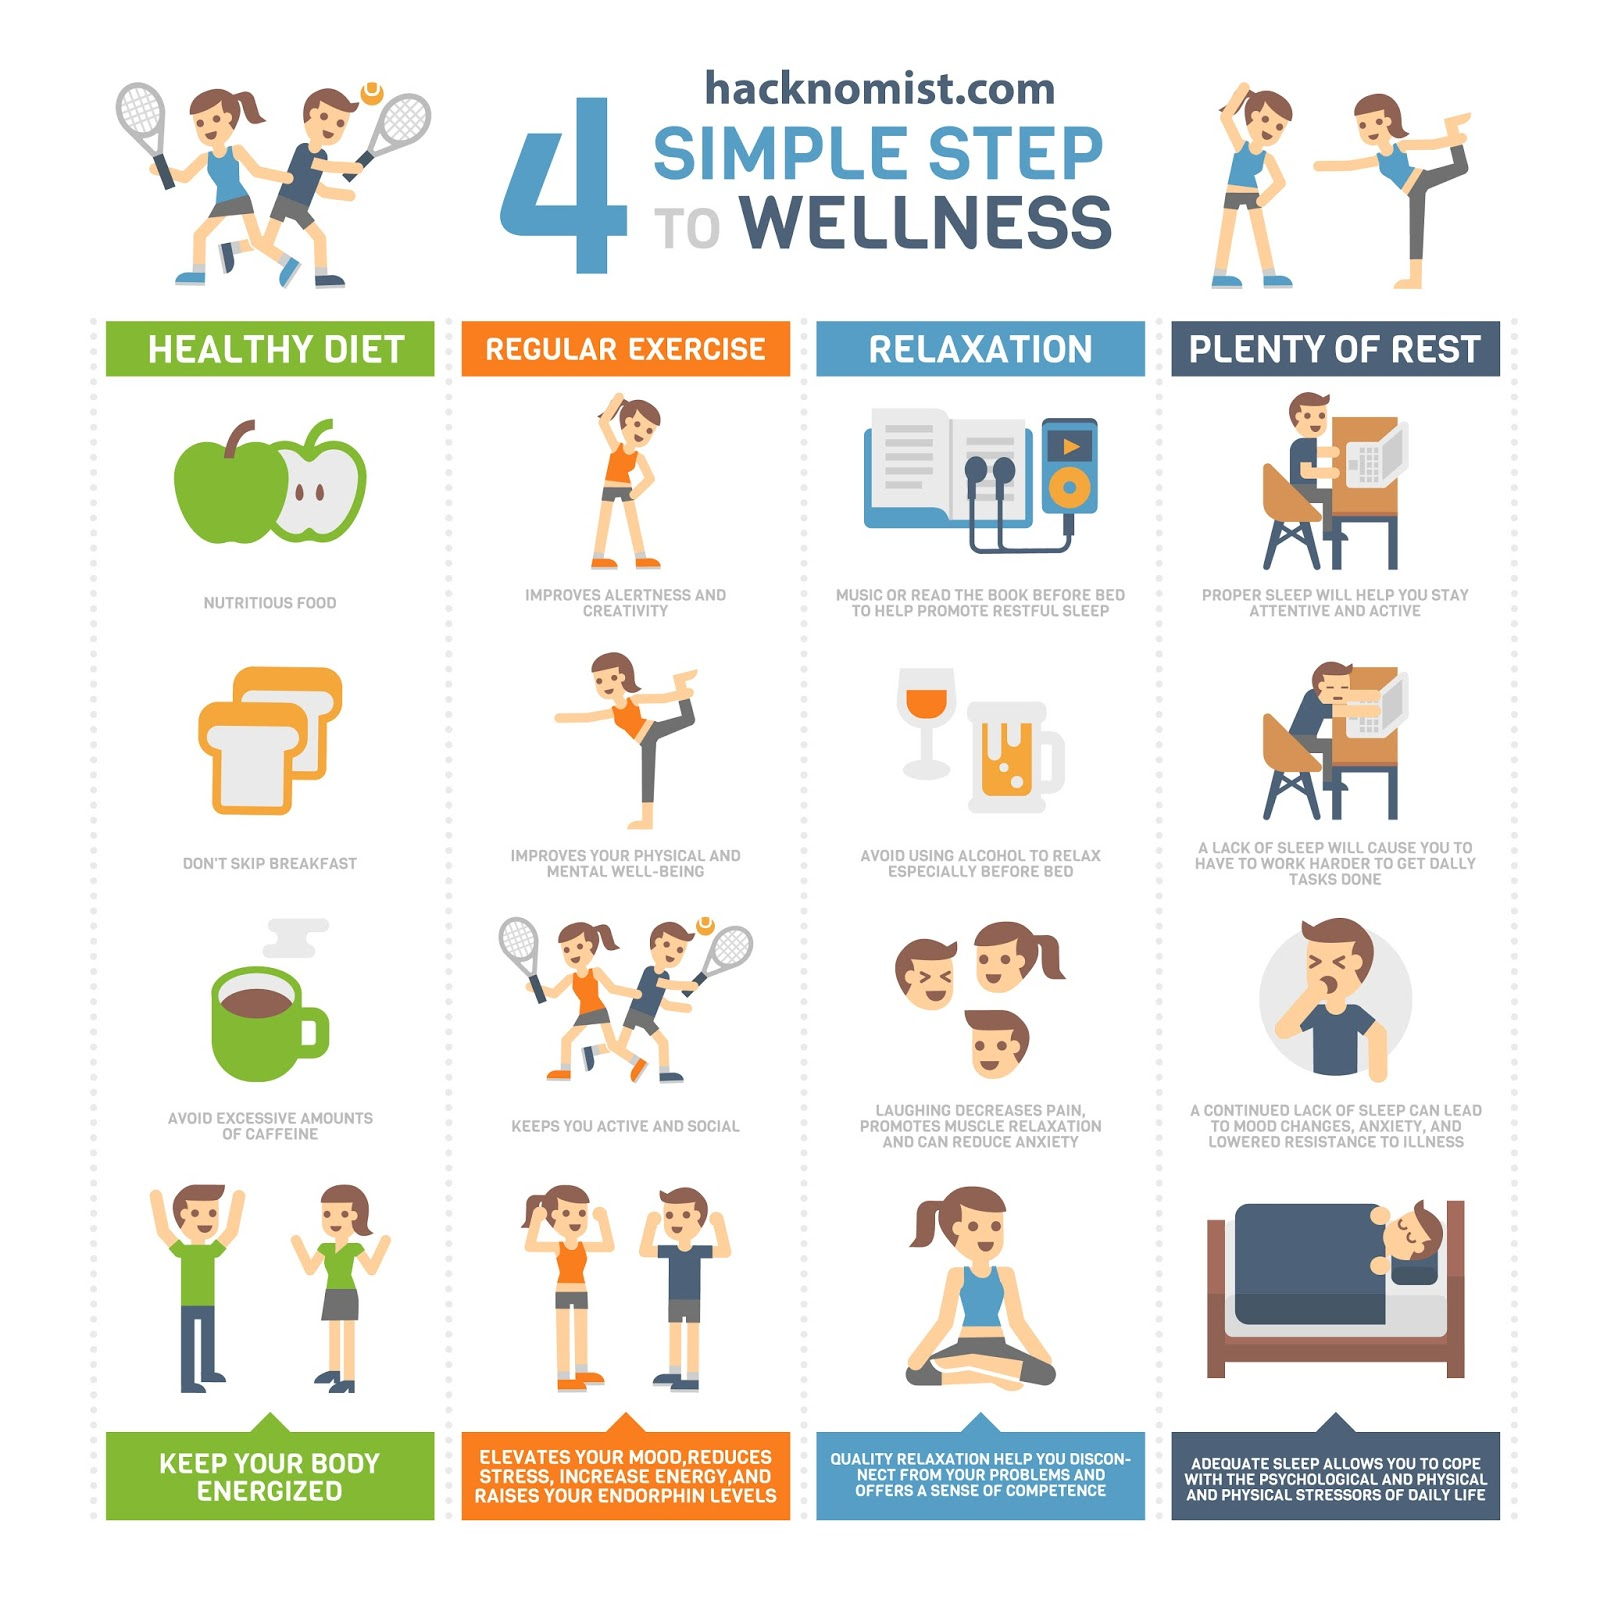 Take these 4 steps to wellness and stay fit and healthy forever